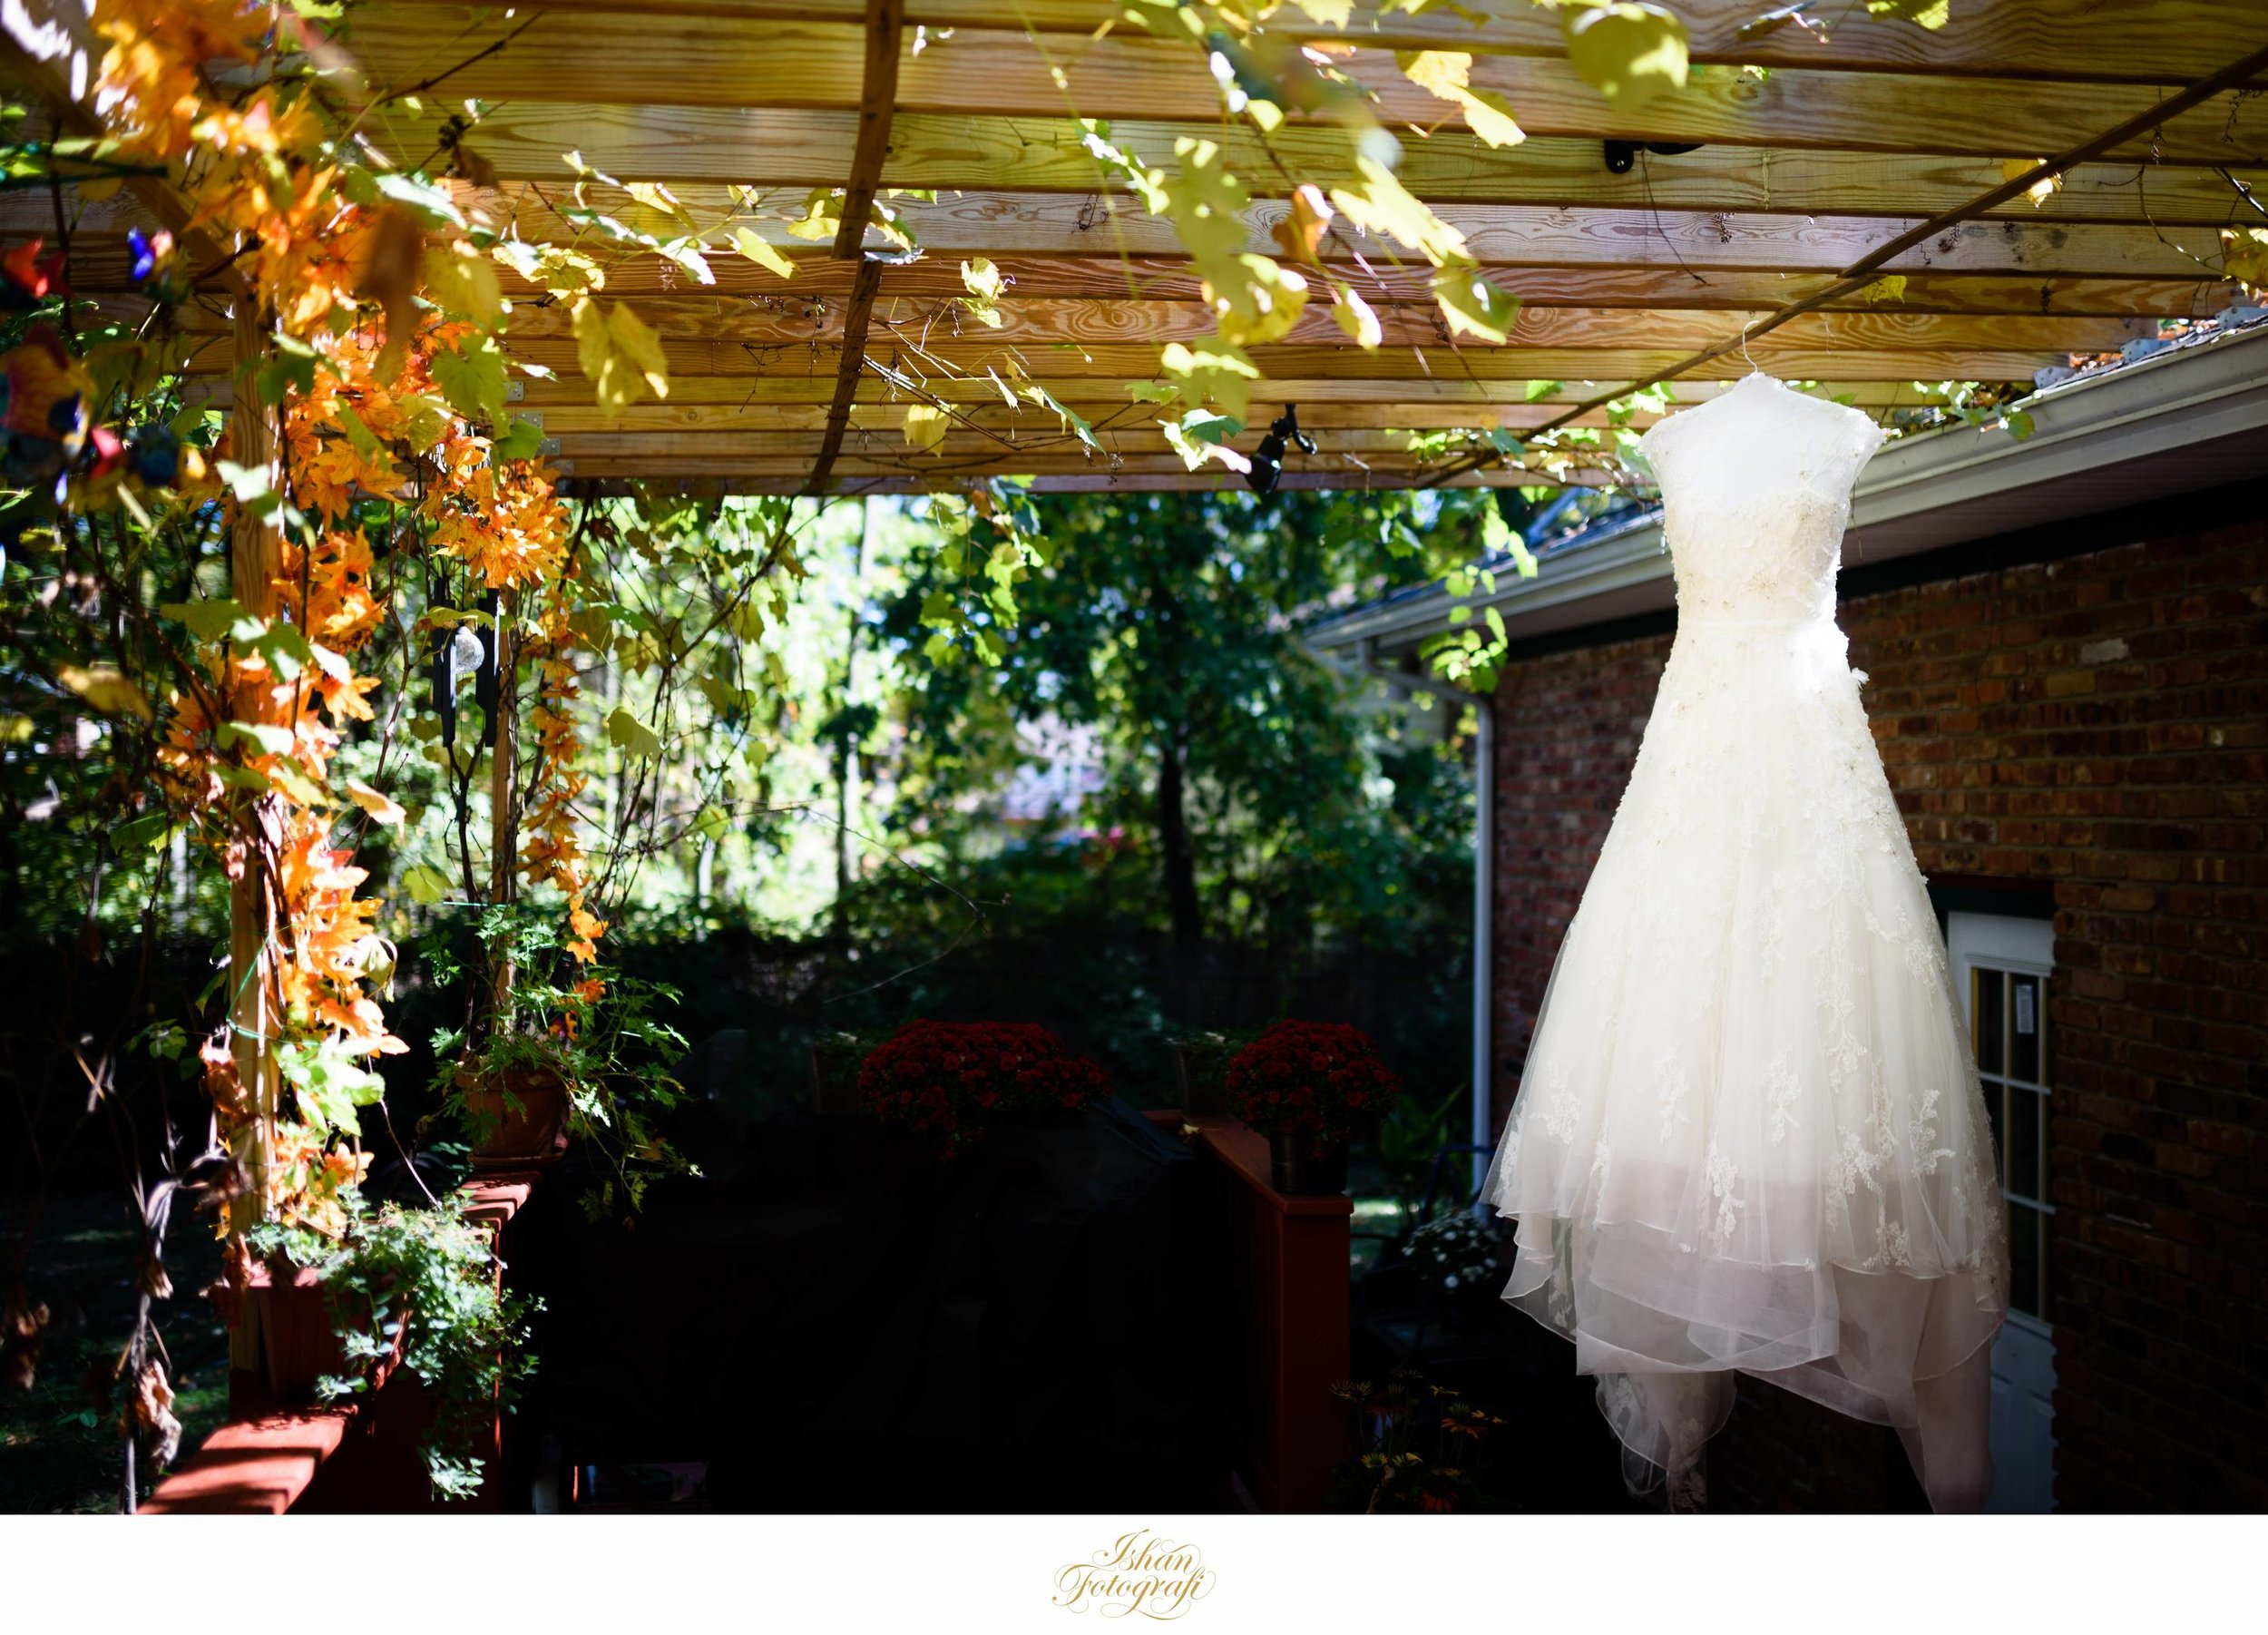 Our bride's gorgeous Elie Saab wedding gown in their backyard. Their backyard was beautifully decorated and full of foliage. We love when brides choose to get ready at their homes on their wedding day.